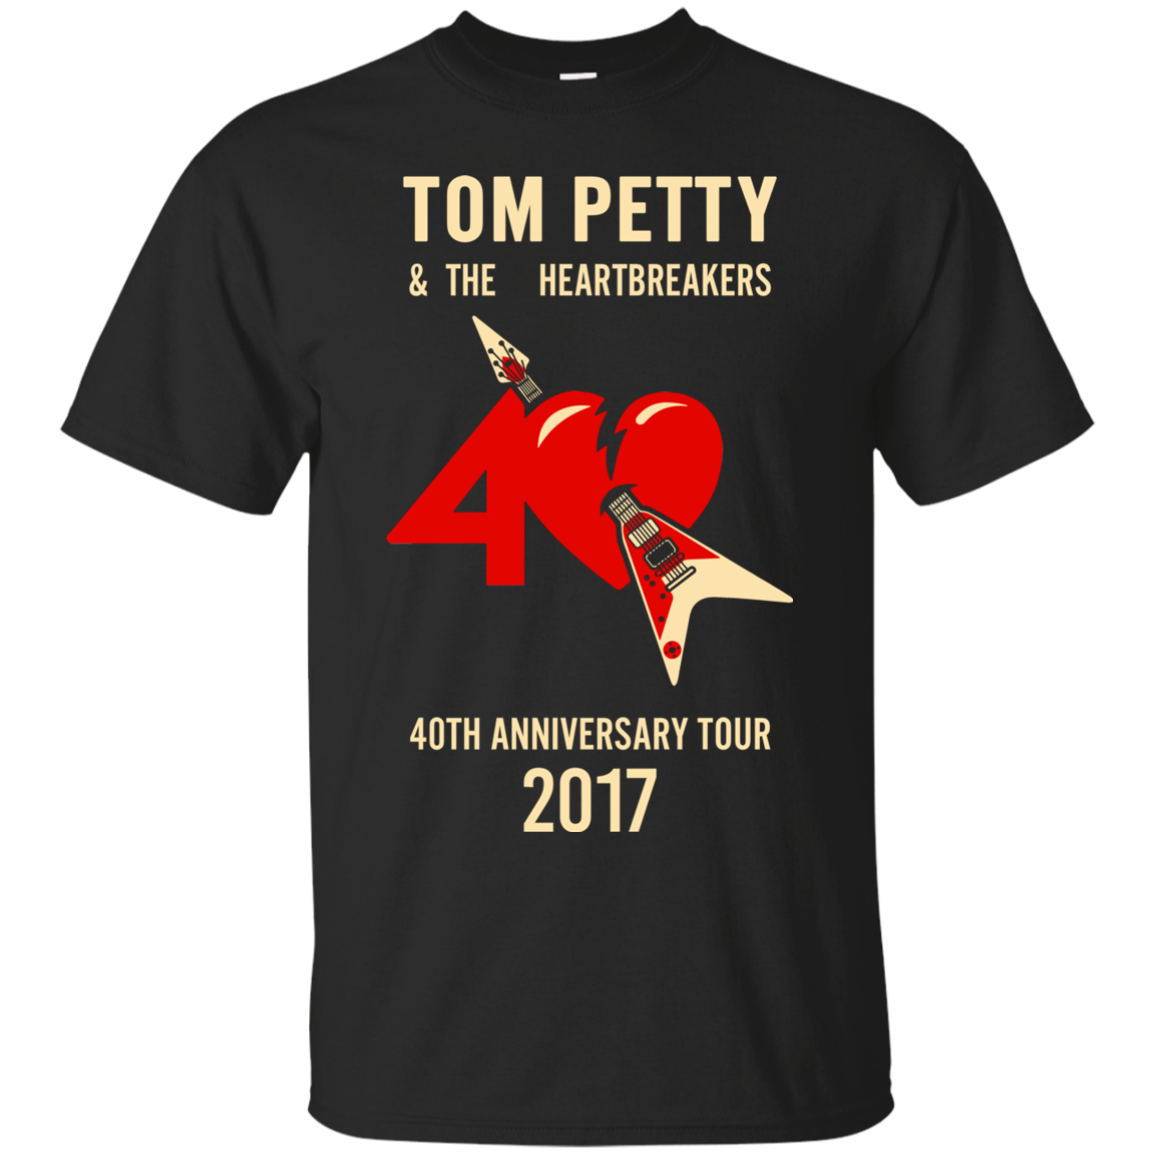 tom petty the heartbreakers 40th anniversary tour 2017. Black Bedroom Furniture Sets. Home Design Ideas